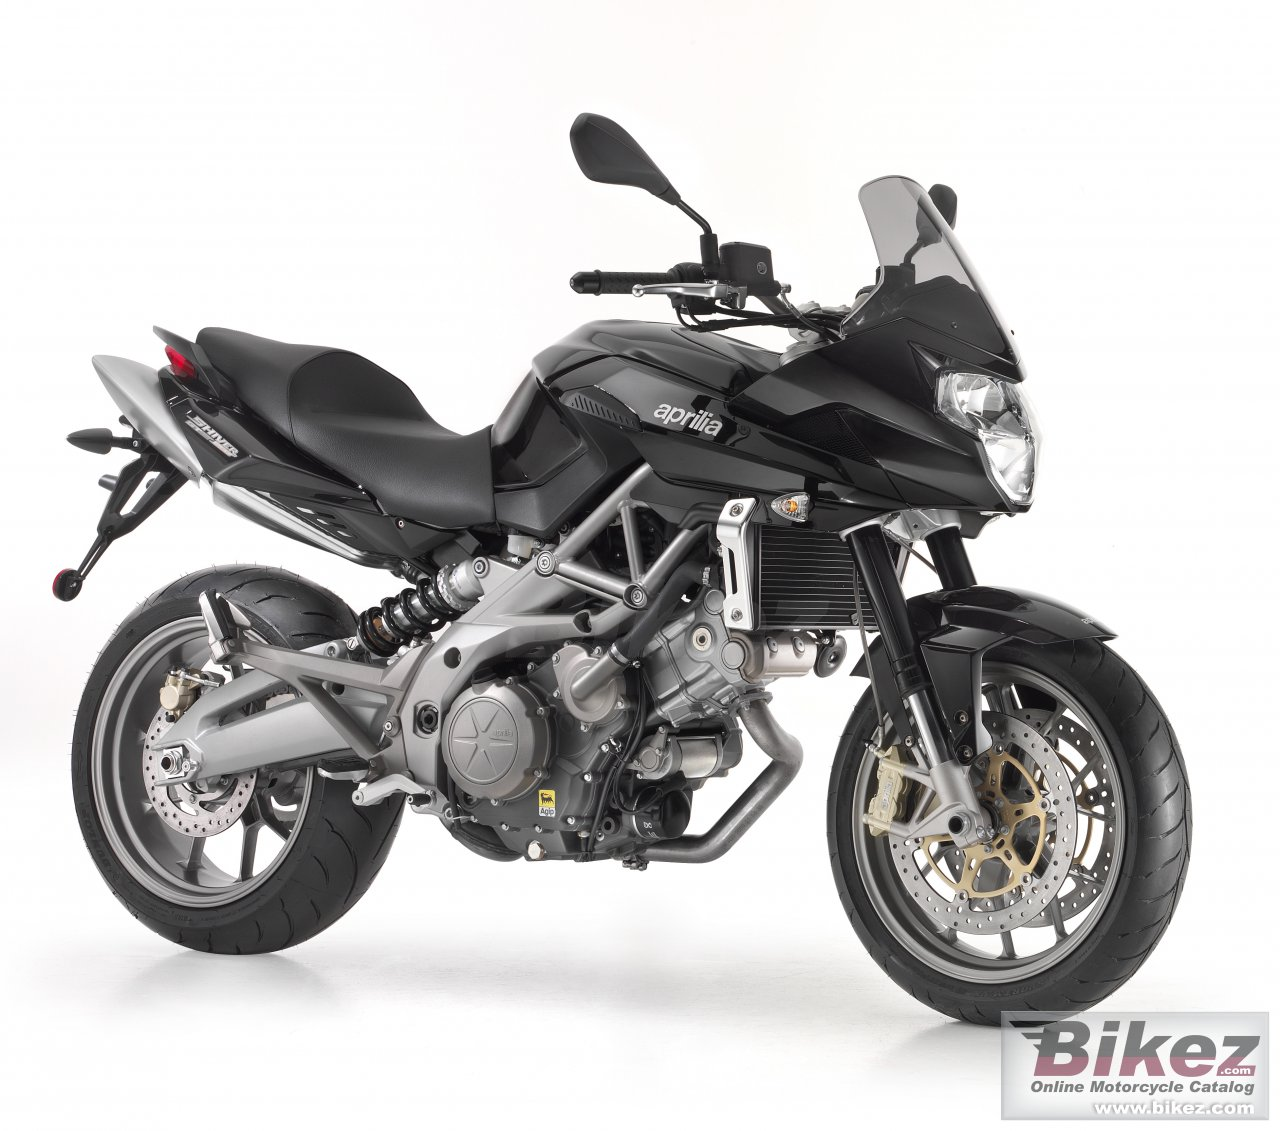 Big Aprilia shiver 750 gt picture and wallpaper from Bikez.com